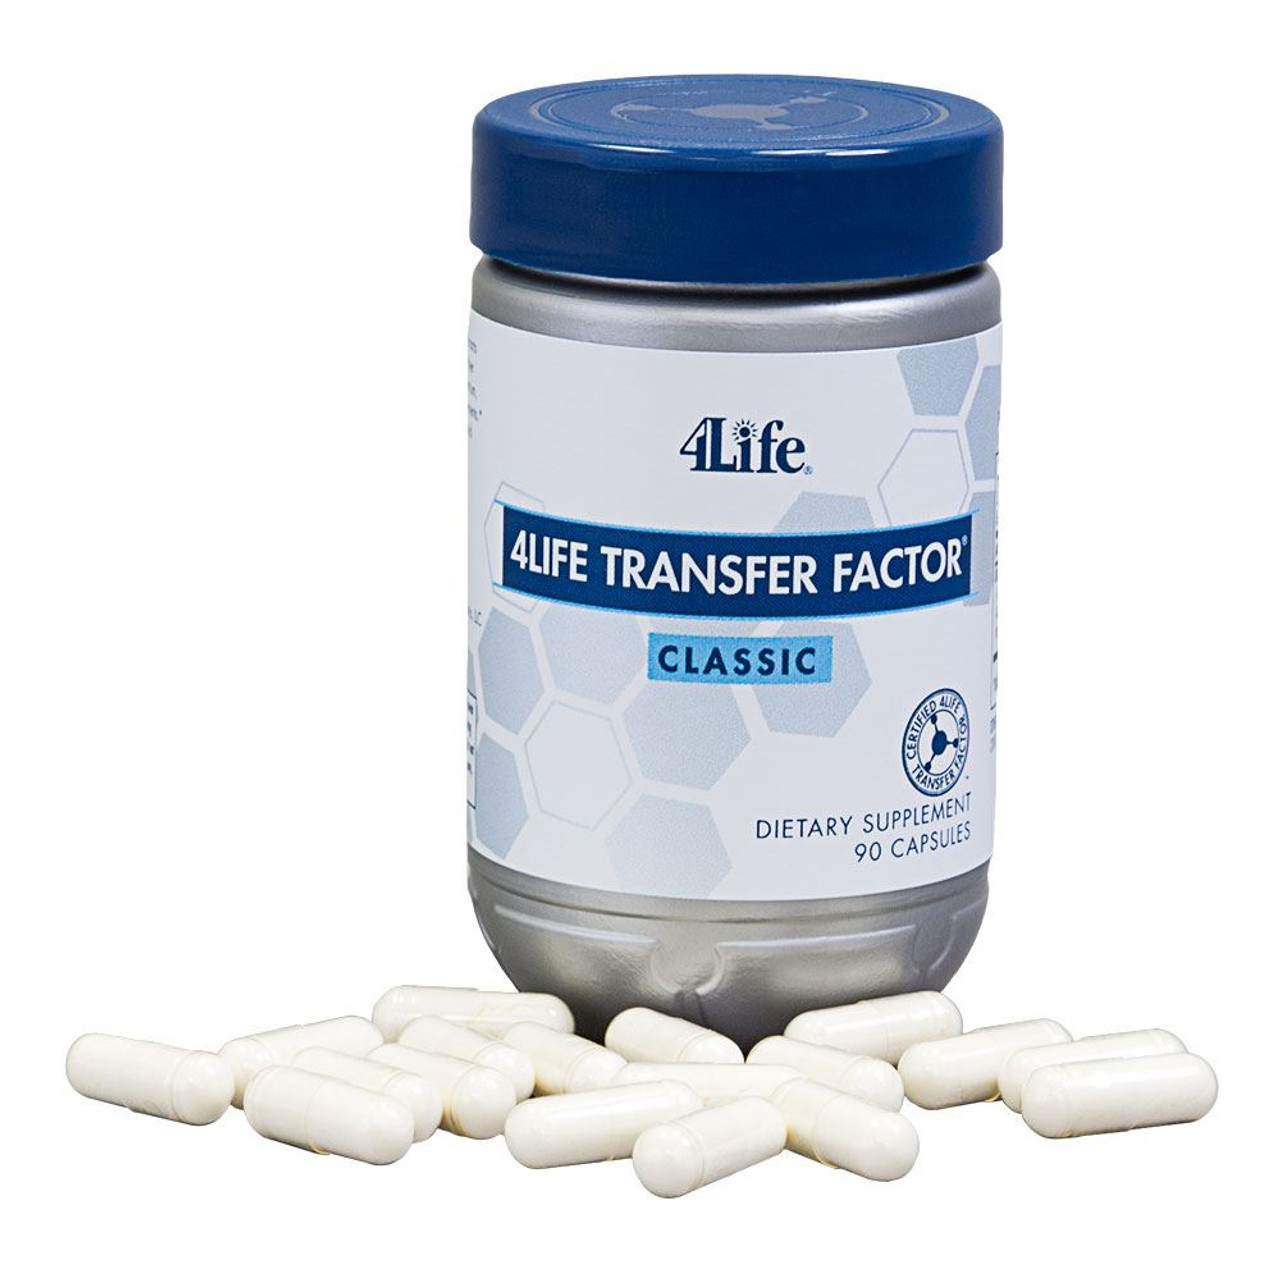 Transfer Factor Classic 90 Count Bottle